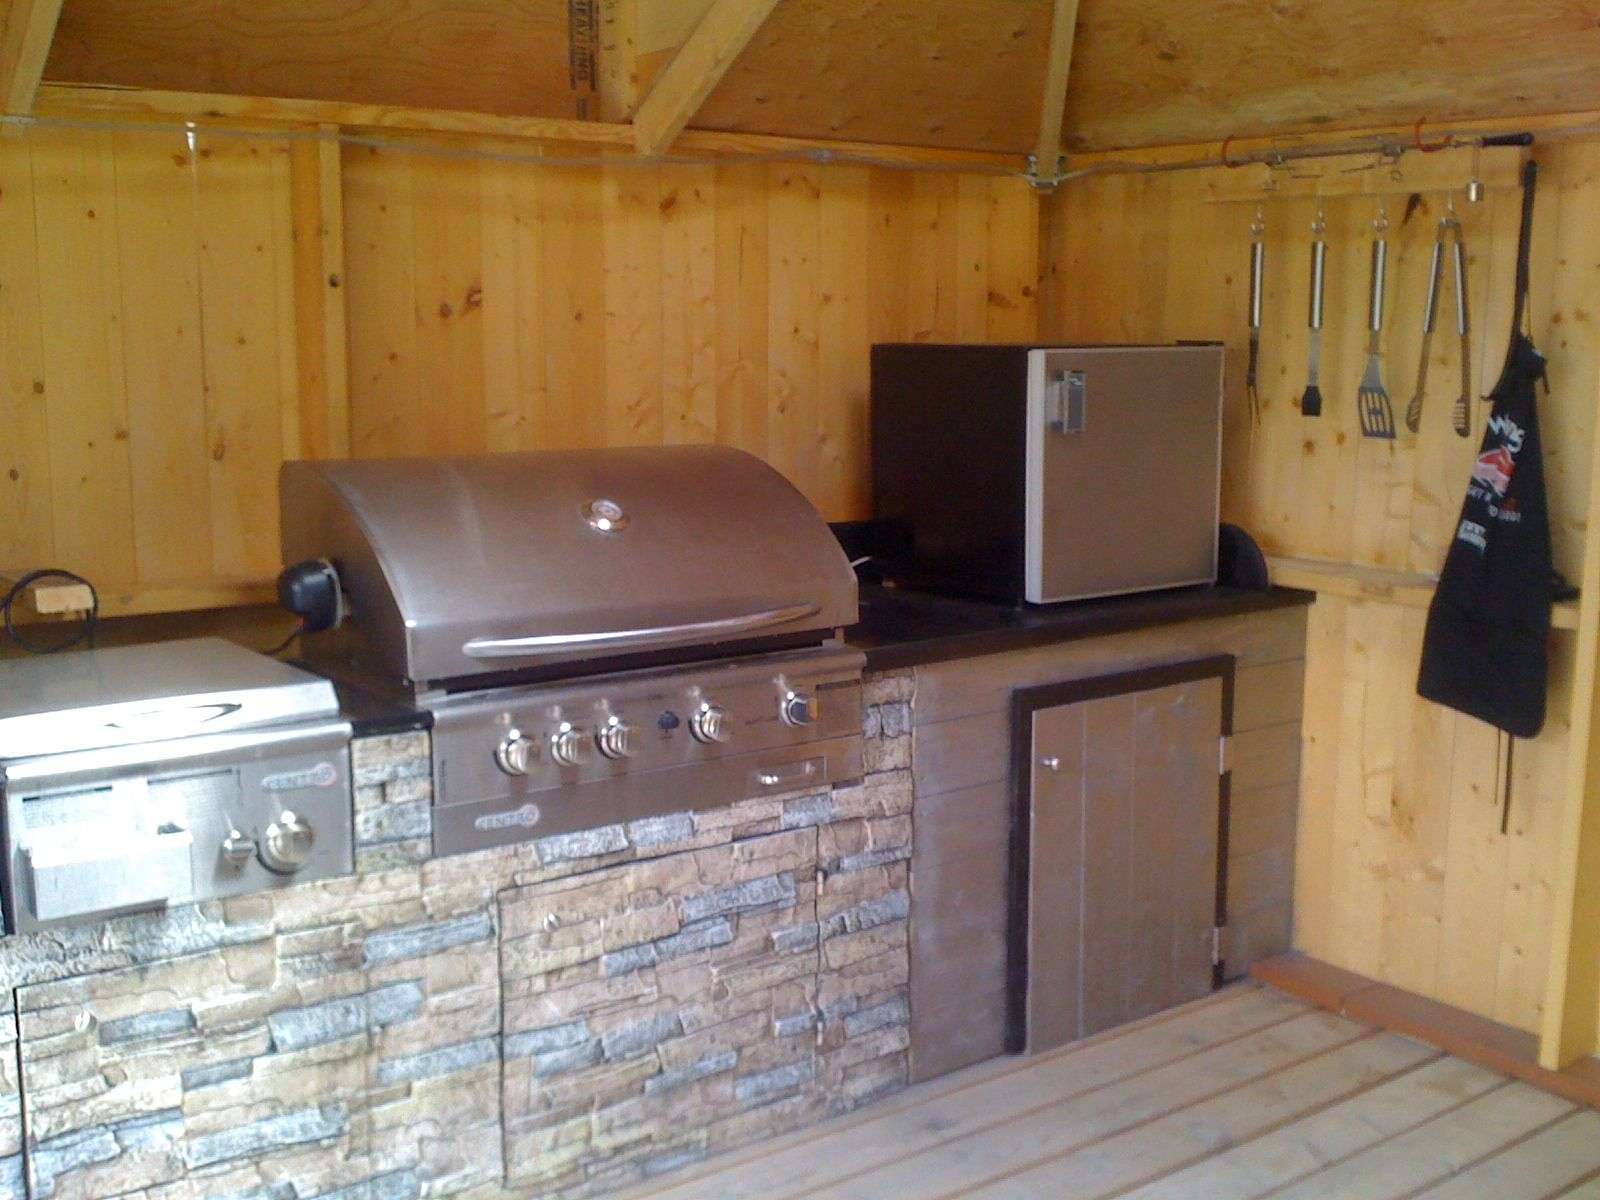 outdoor kitchen exhaust hoods discount cabinets jacksonville fl here 39s a inside three sided gazebo with